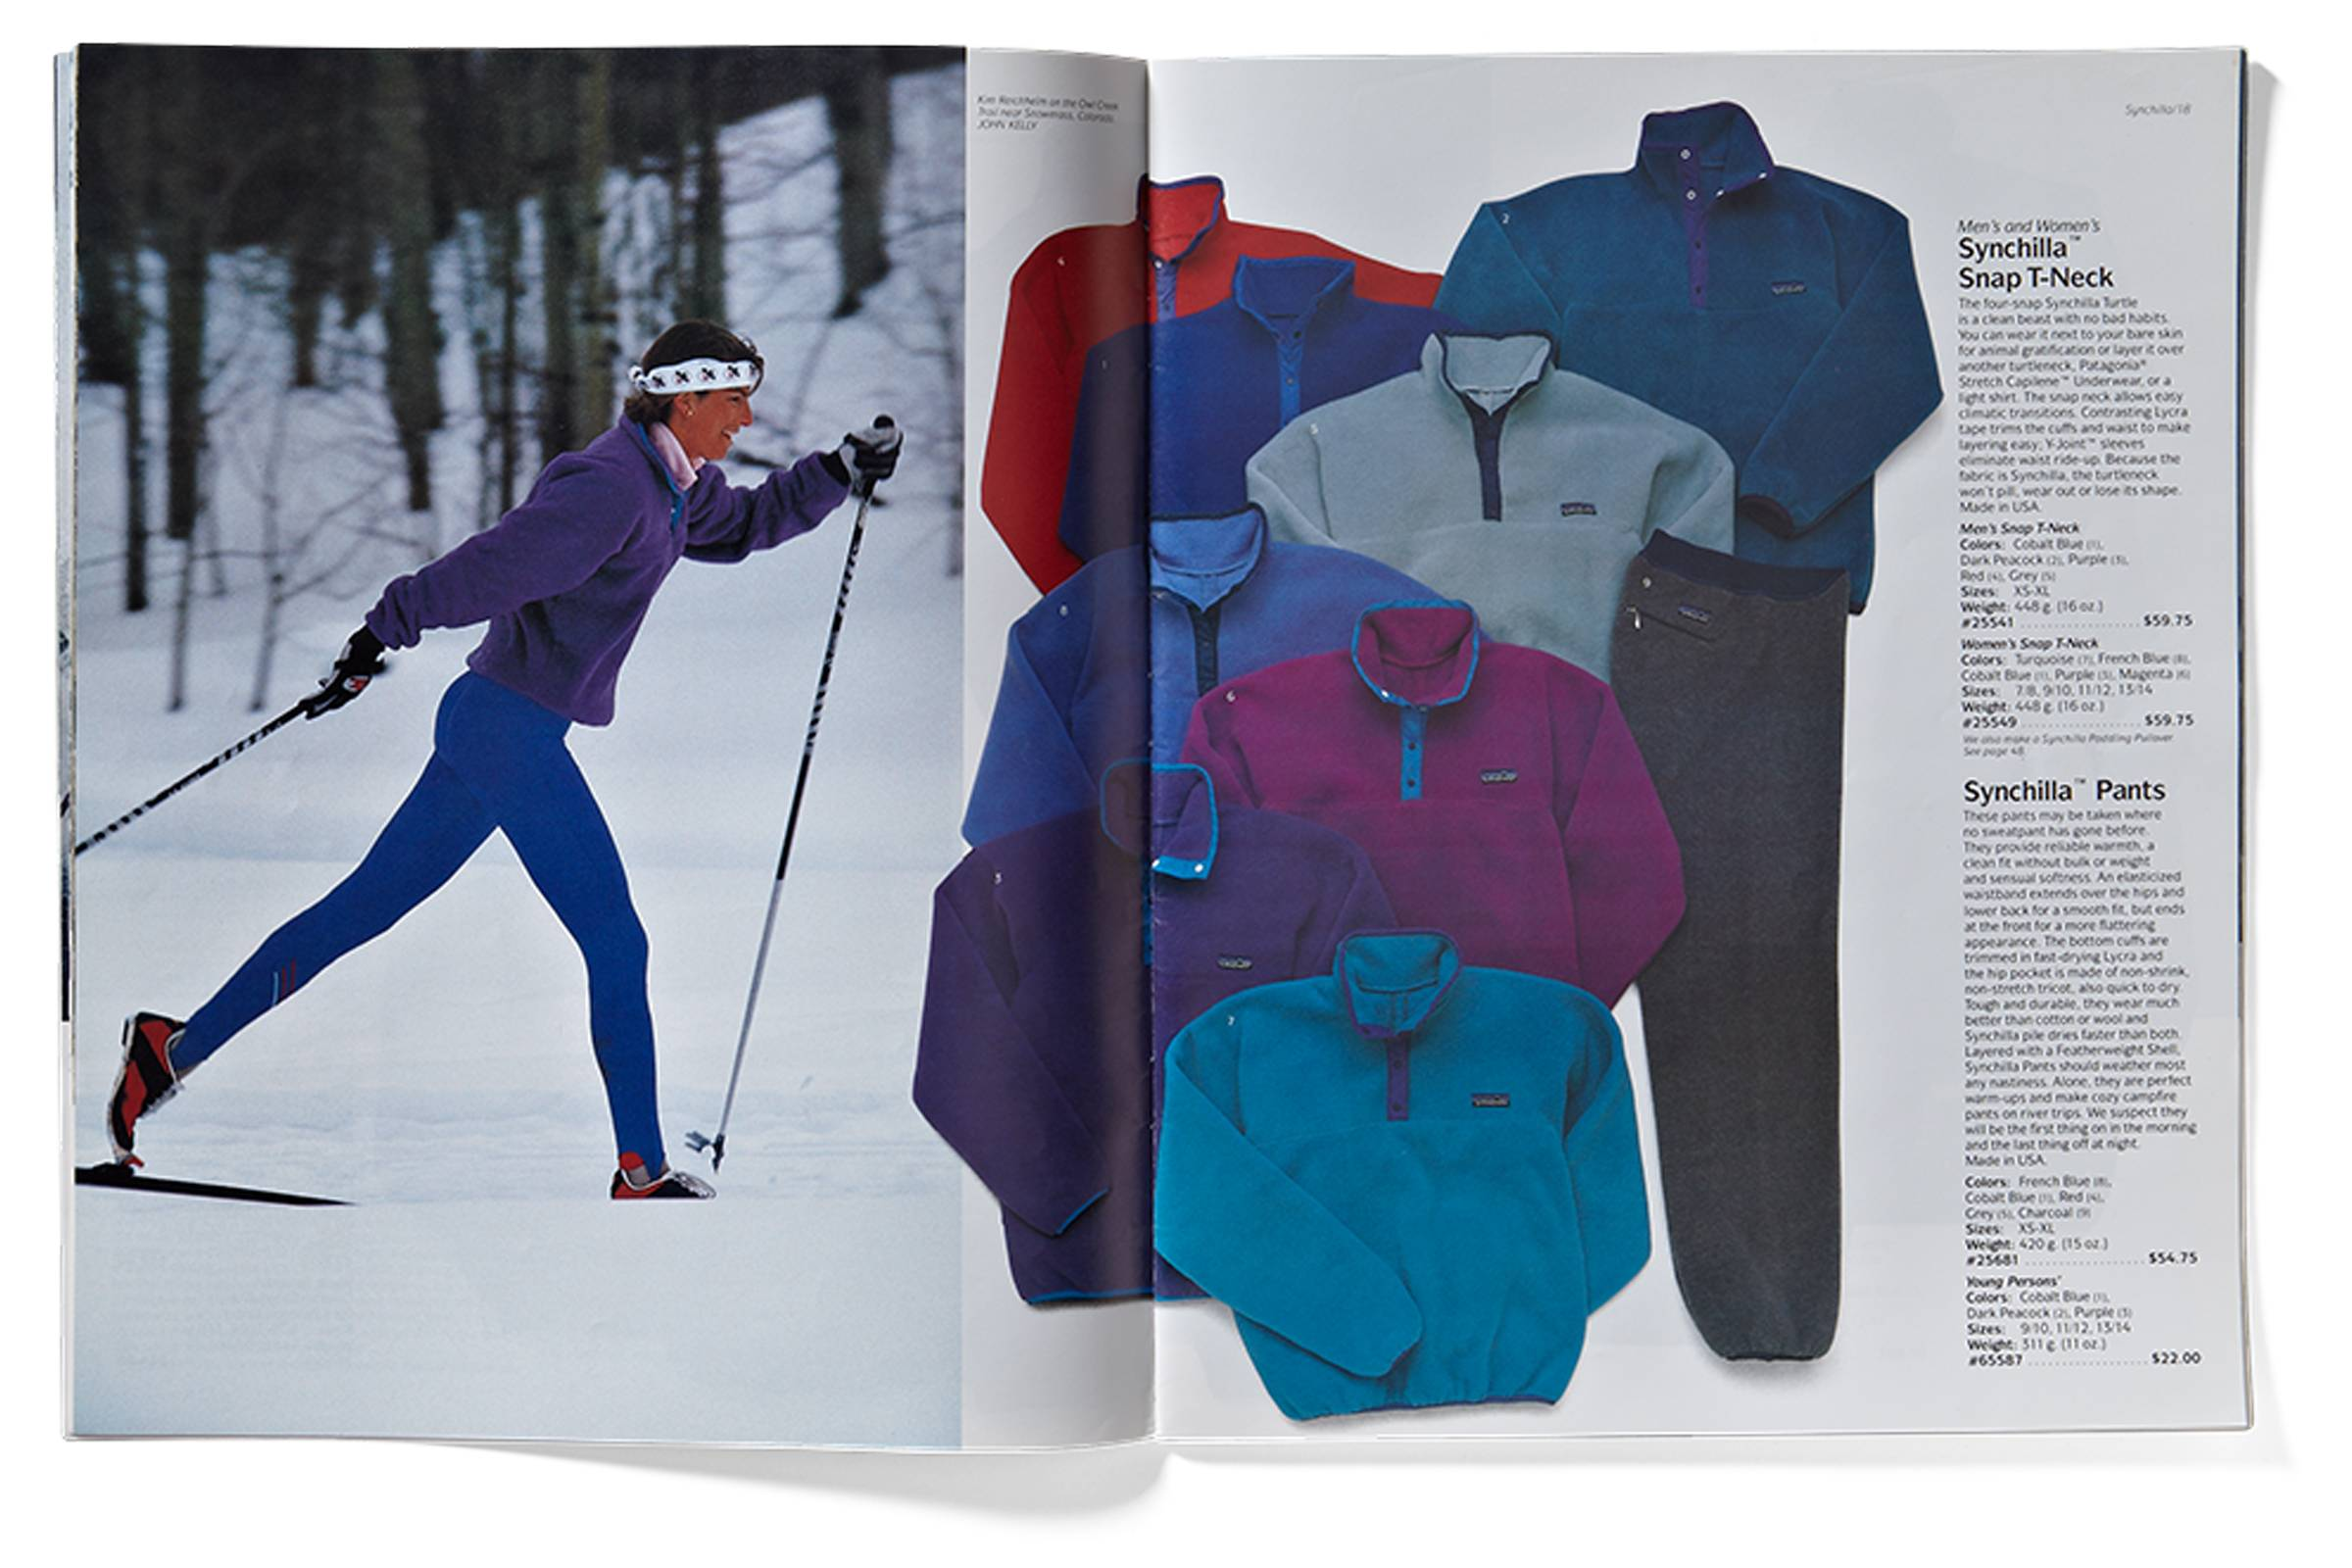 Patagonia catalog section highlighting Synchilla synthetic fleece